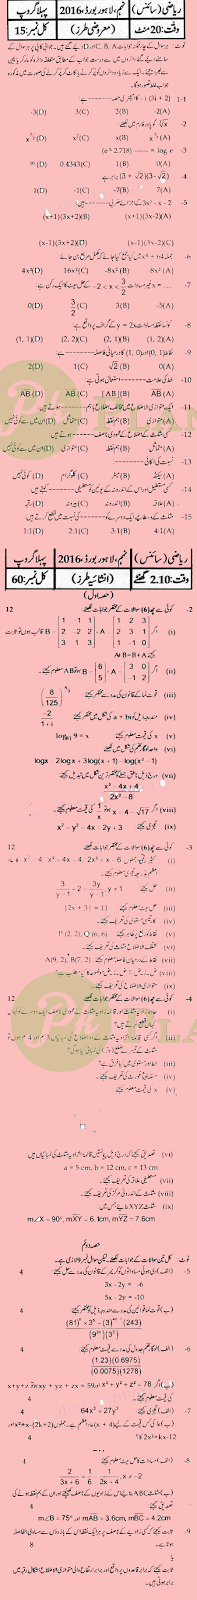 Past Papers of 9th Class Lahore Board 2016 Mathematics